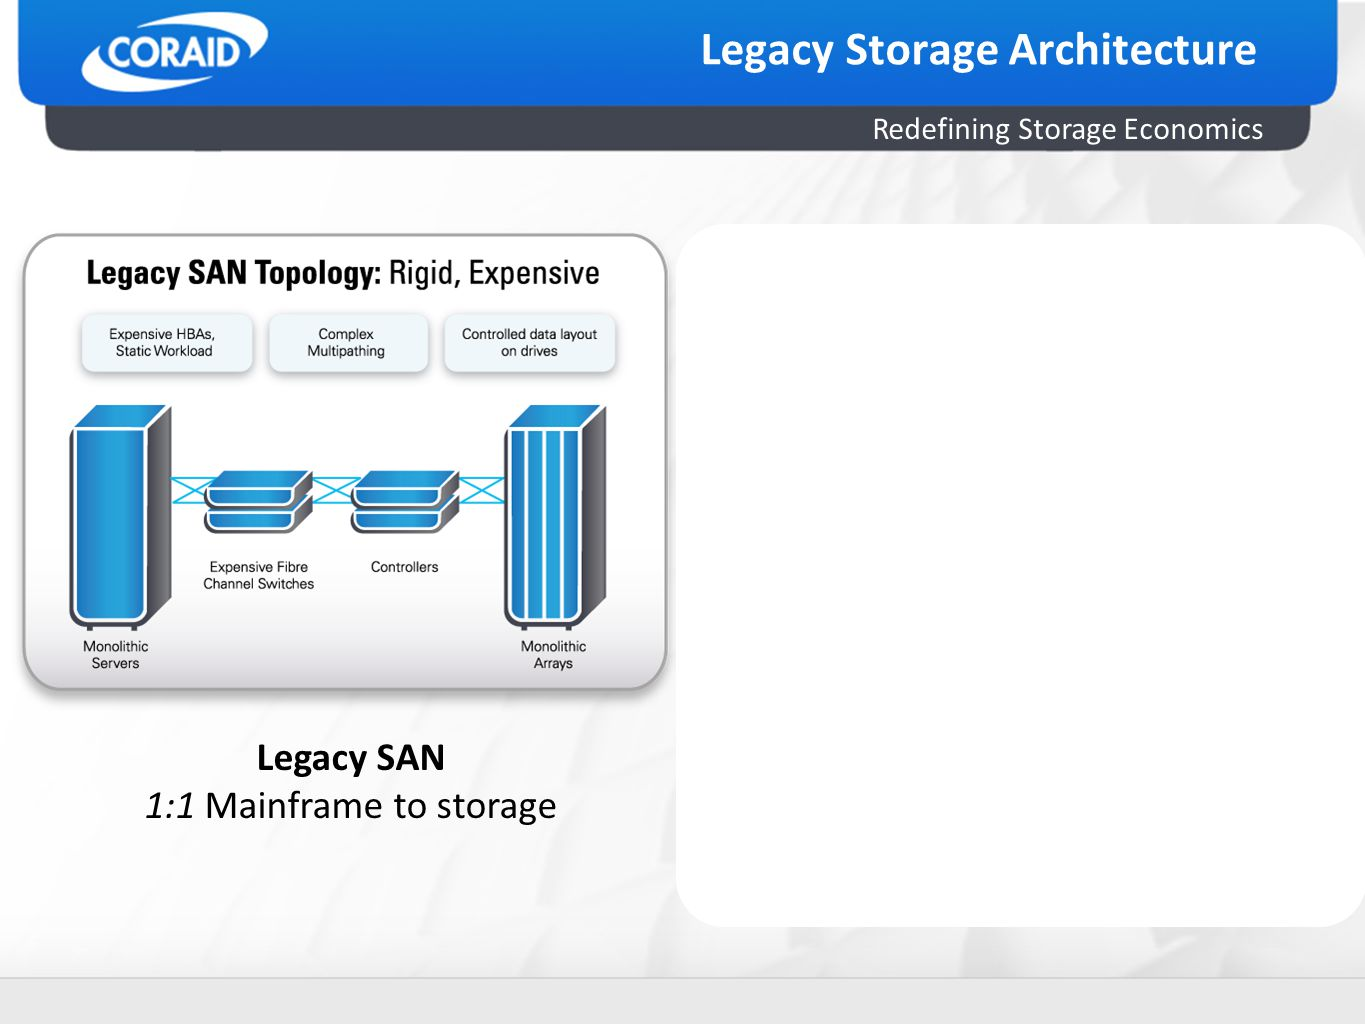 Redefining Storage Economics Scale-out Ethernet SANEthernet AoE Ethernet IP TCP iSCSI SCSI F ibre C han SCSI ATA AoE iSCSIFibre Channel Storage Protocol Stacks Ethernet SAN  Bare metal performance  No controller bottleneck  Eliminates complex topologies  No more complex multi-pathing  Ethernet simplicity  Lightweight protocol wins!